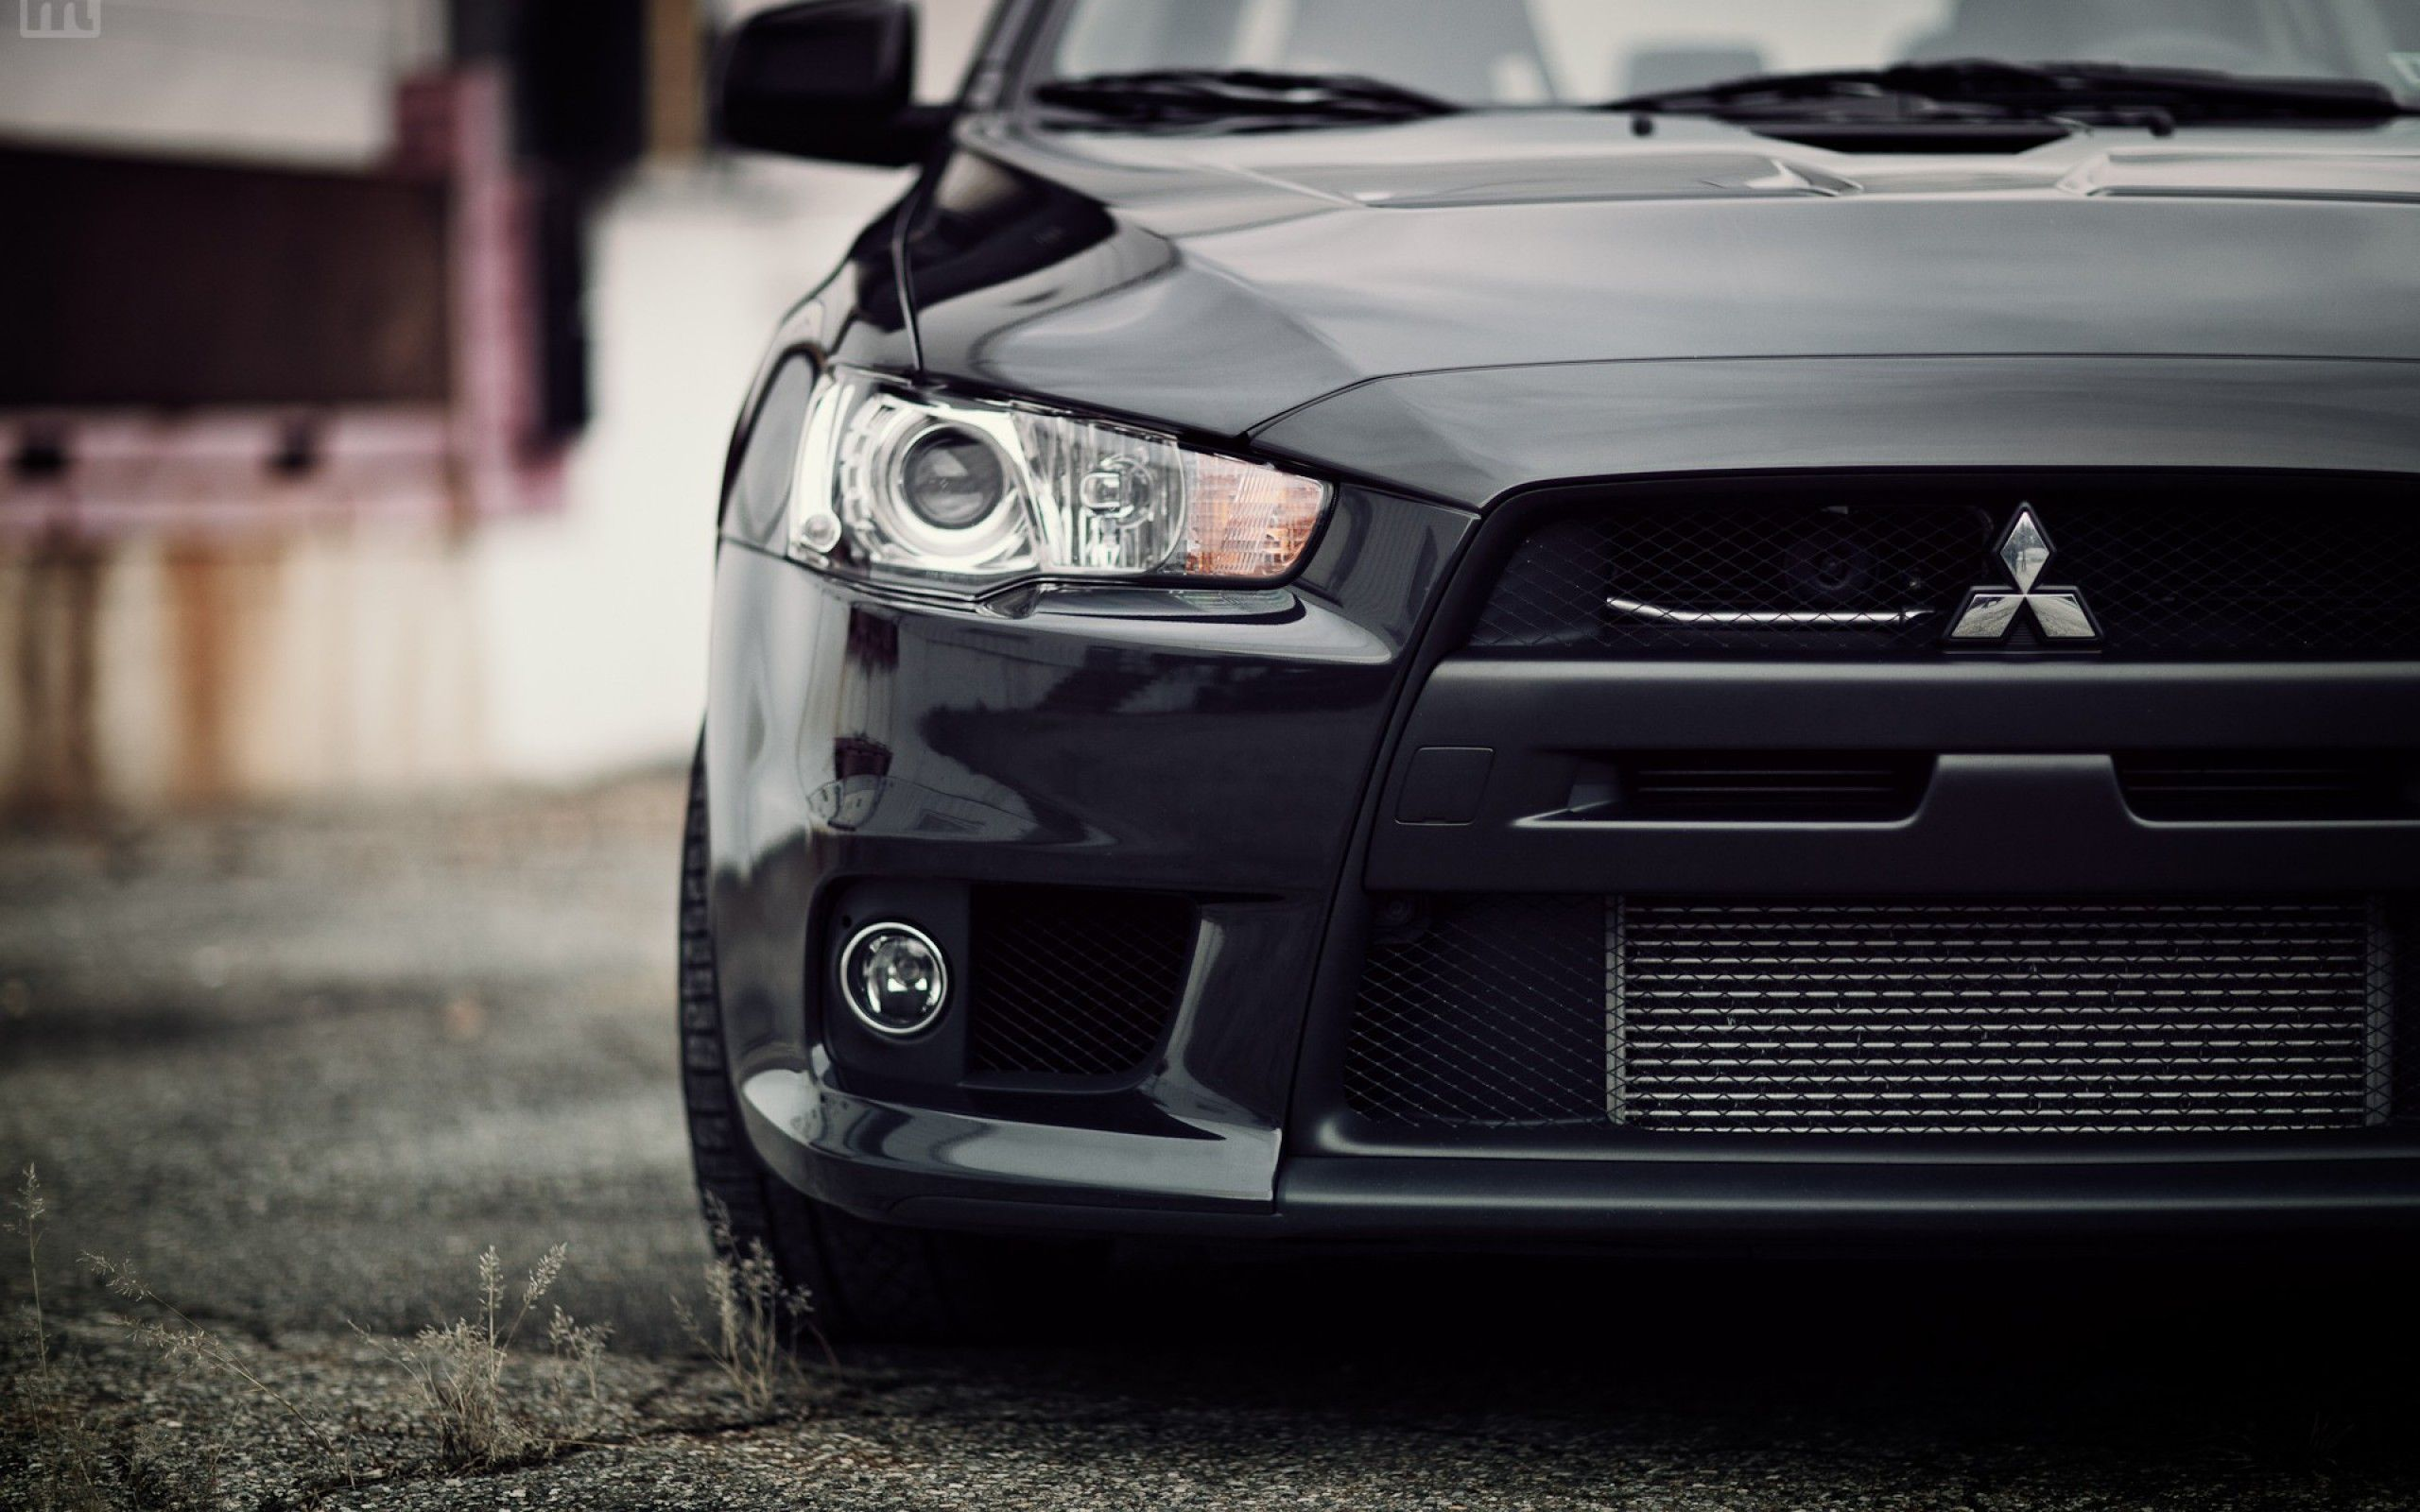 Pin By Willey On Evo X With Images Mitsubishi Lancer